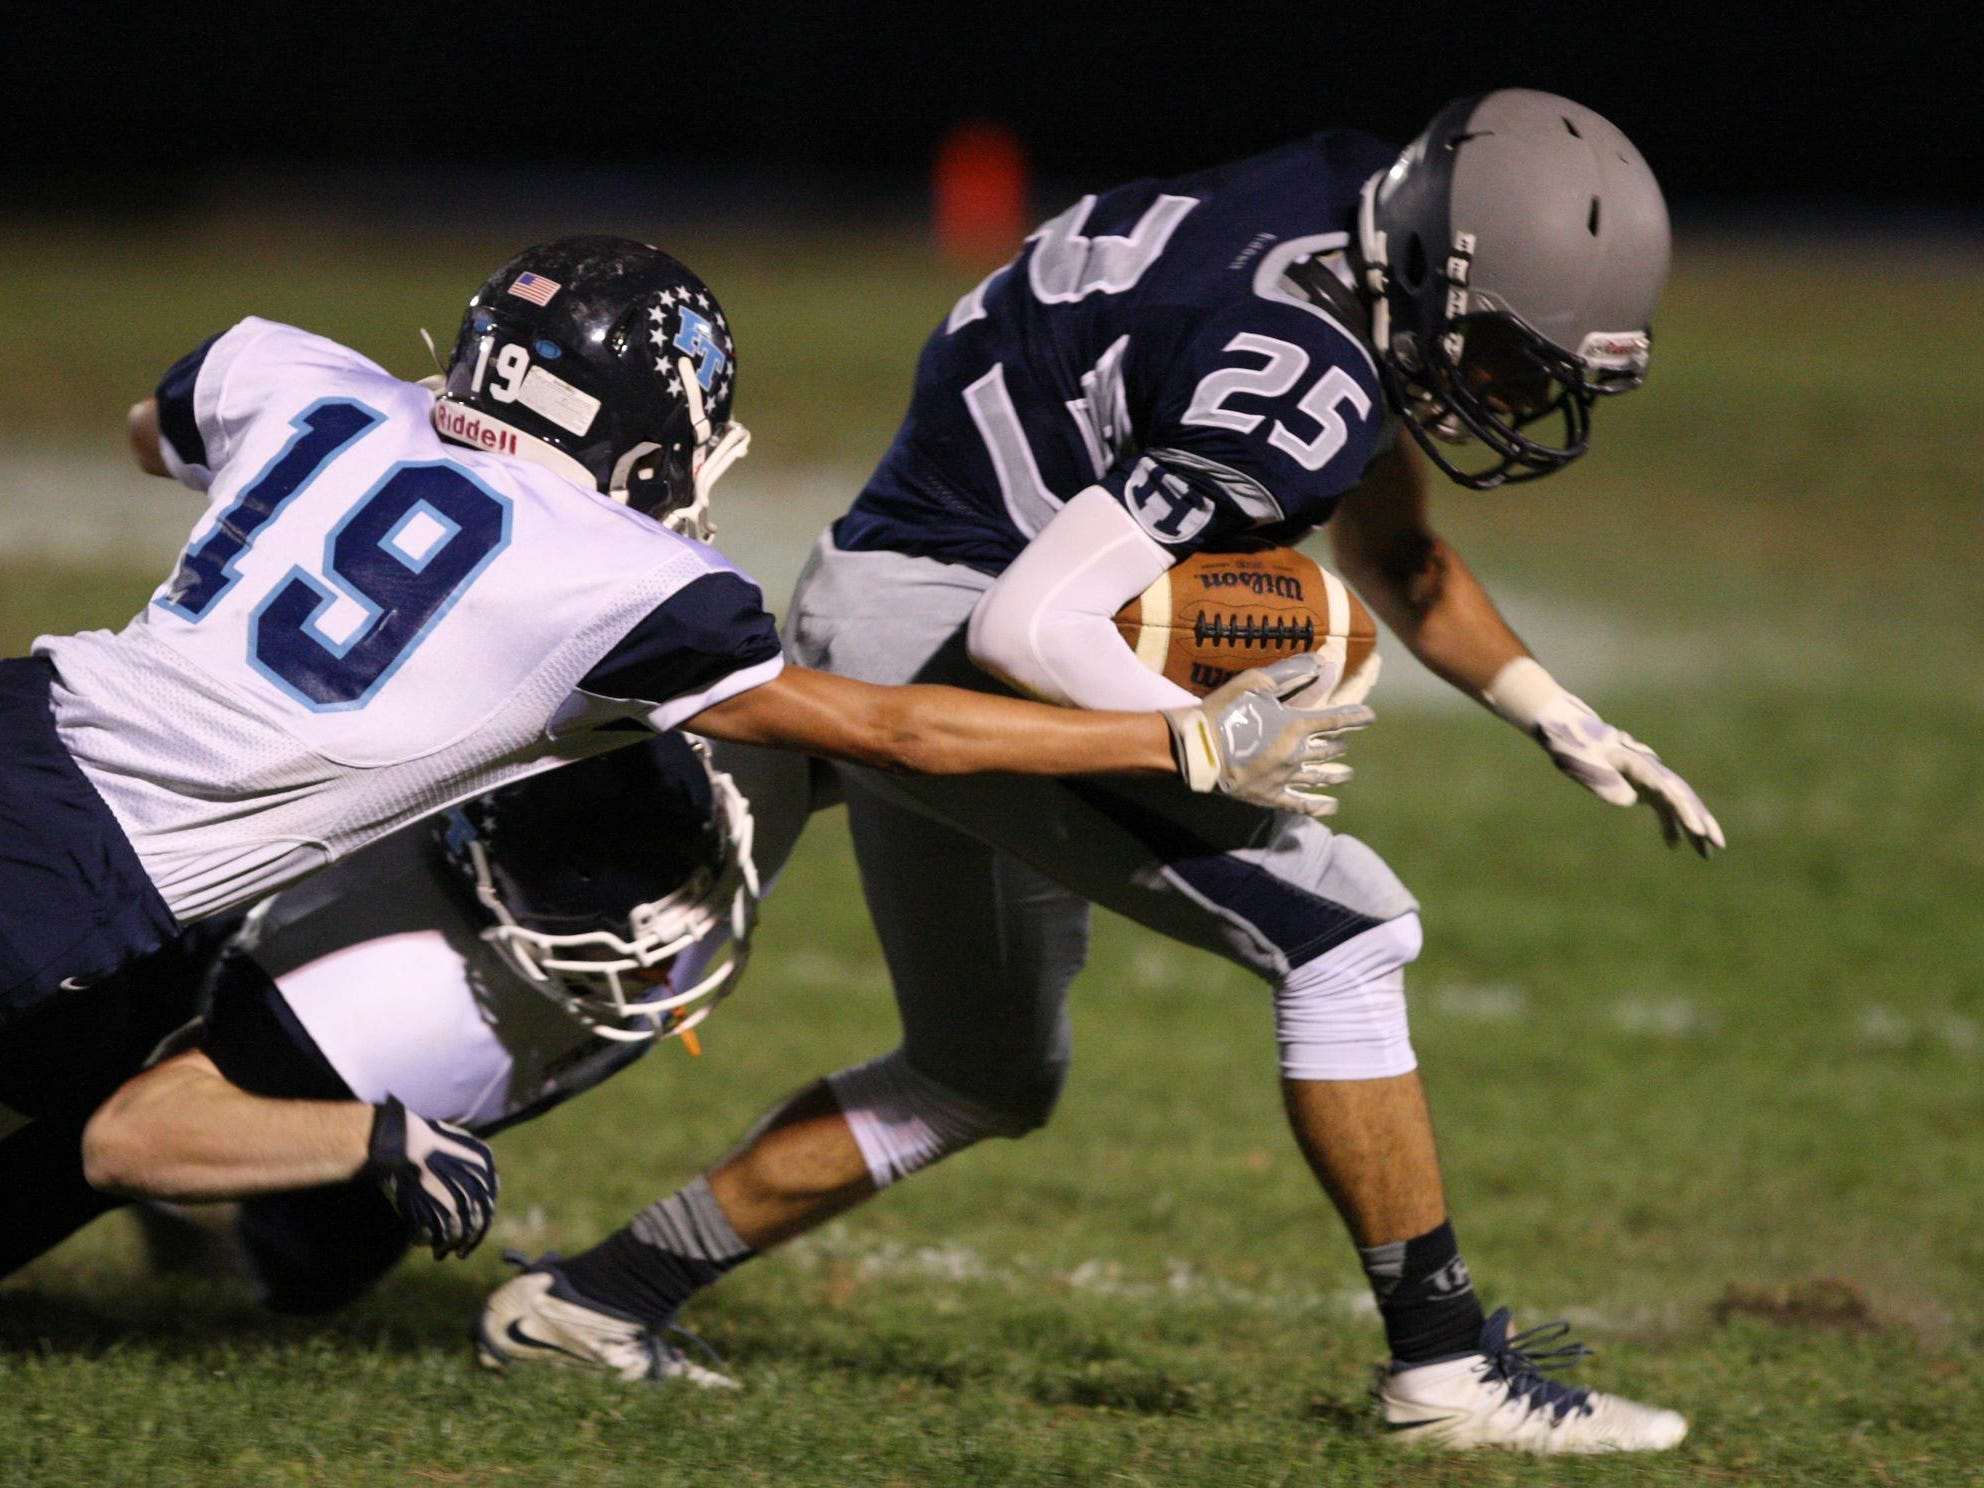 Nick Chianca, #25 Howell, tries to break free of Pat Laricy, #19 Freehold Township, in a football game Friday, September 25, 2015, at Howell High School.